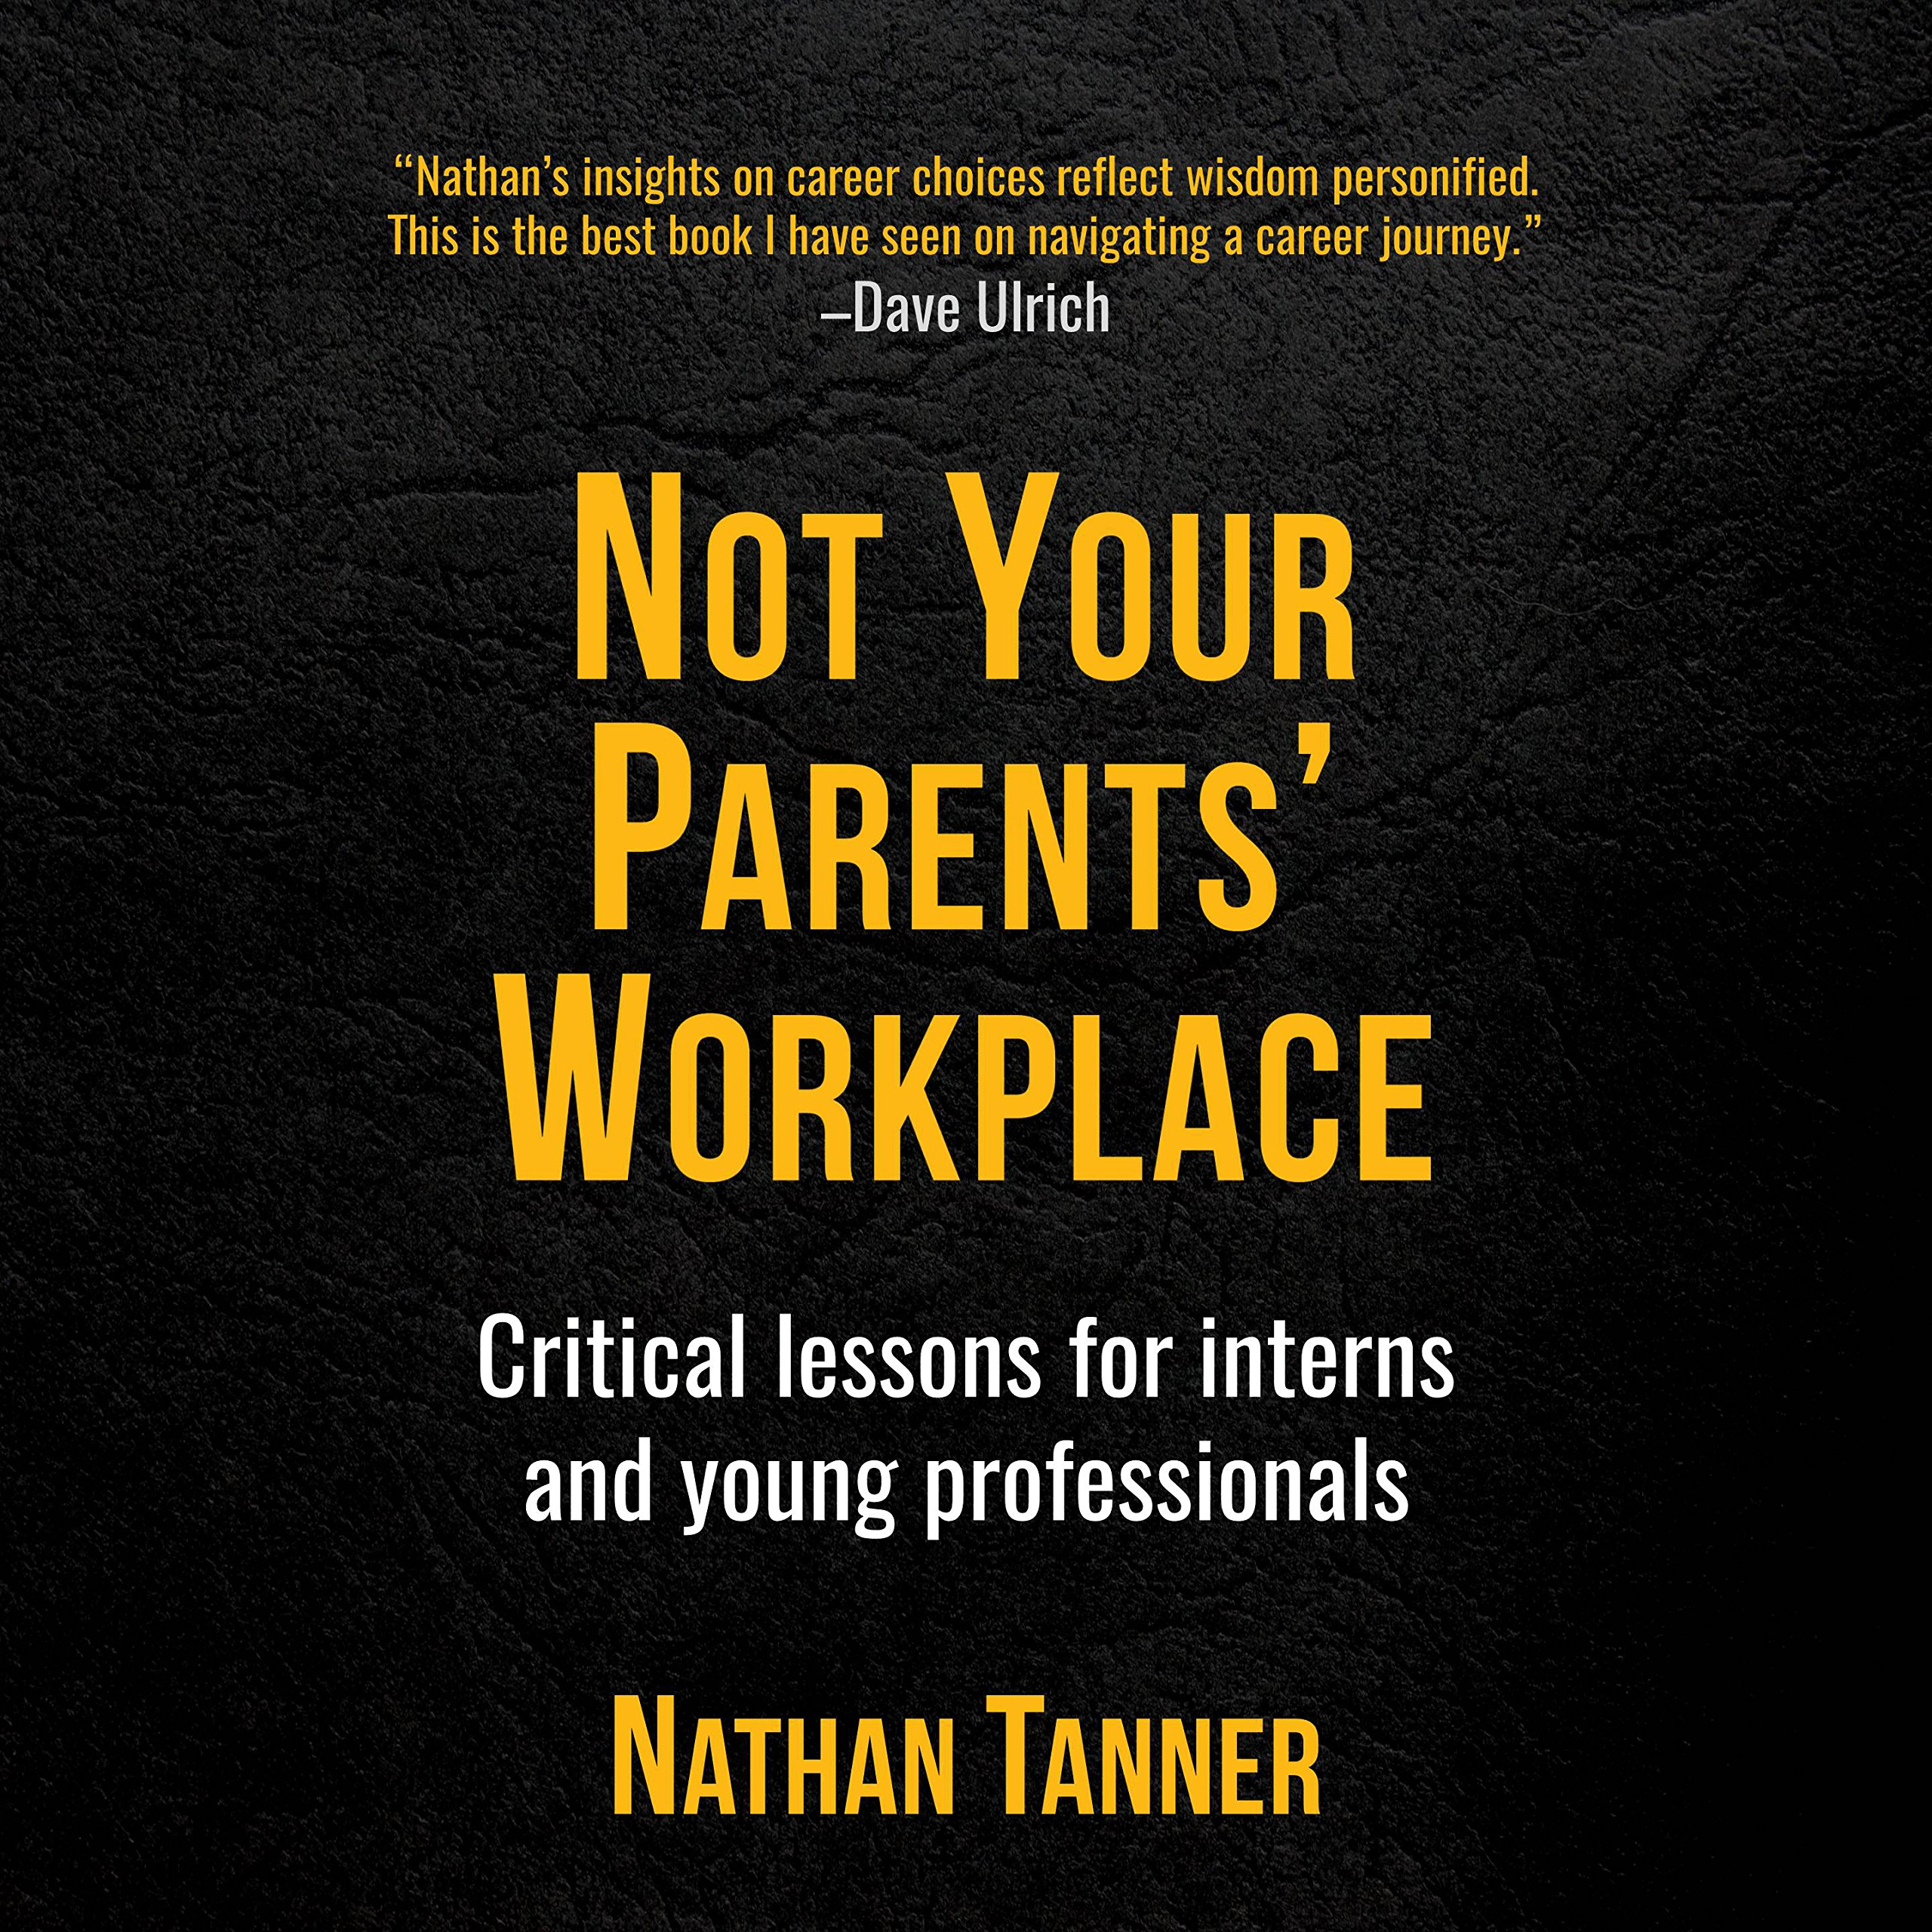 Not Your Parents' Workplace: Critical Lessons for Interns and Young Professionals